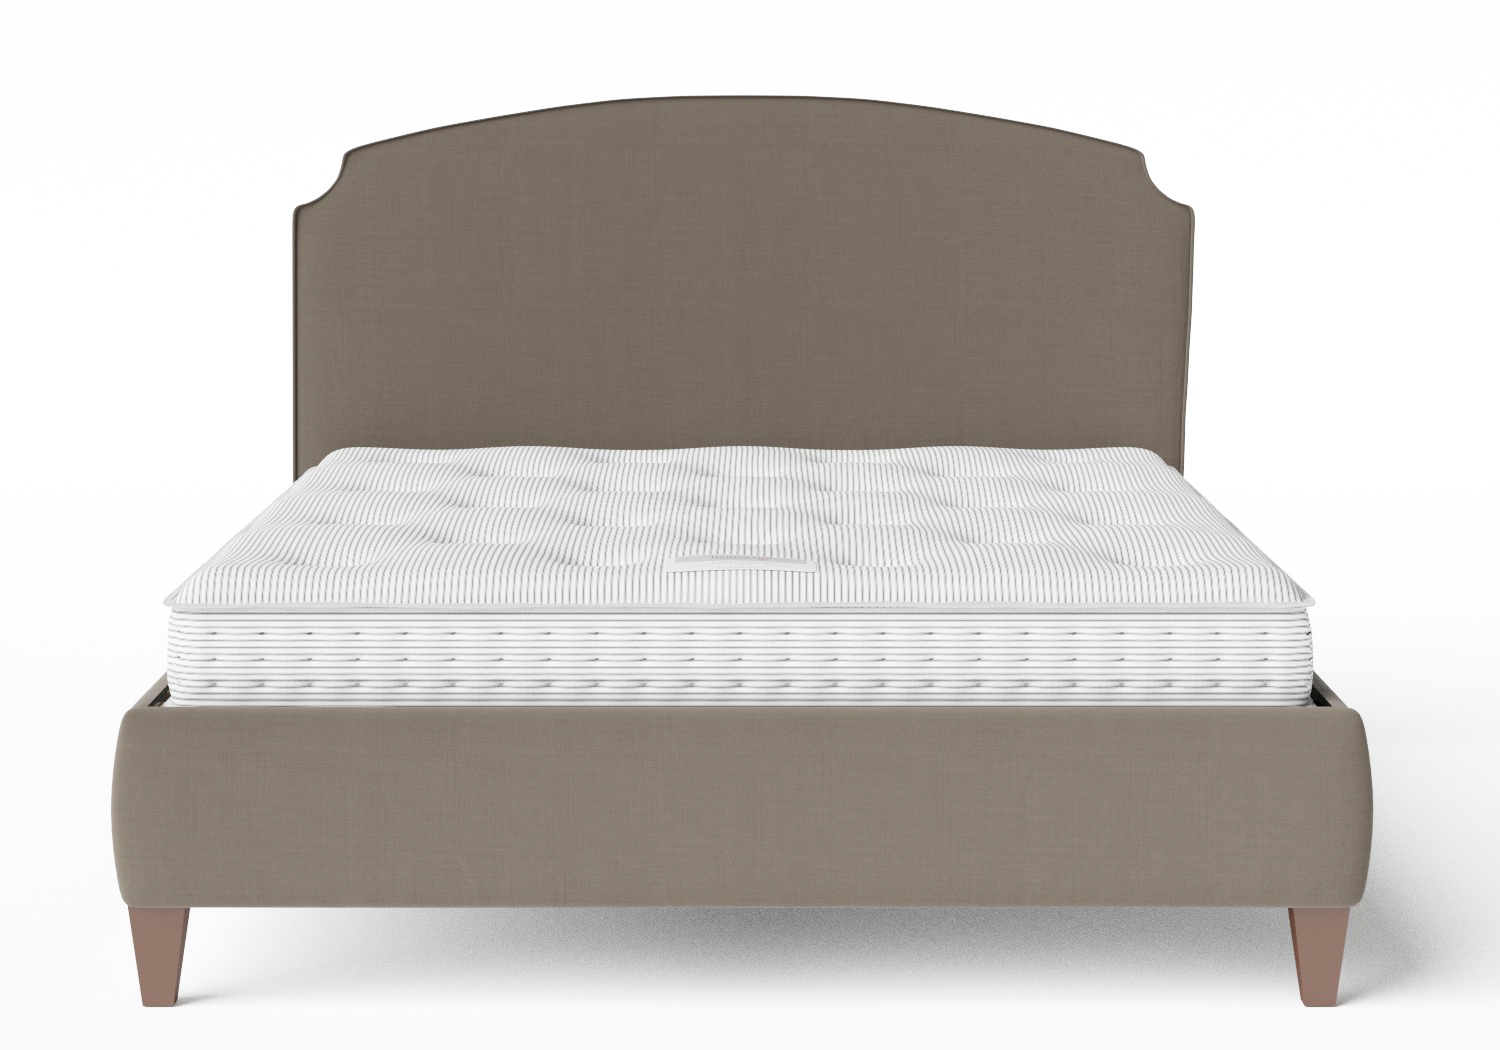 Lide Upholstered Bed in Grey fabric with piping shown with Juno 1 mattress